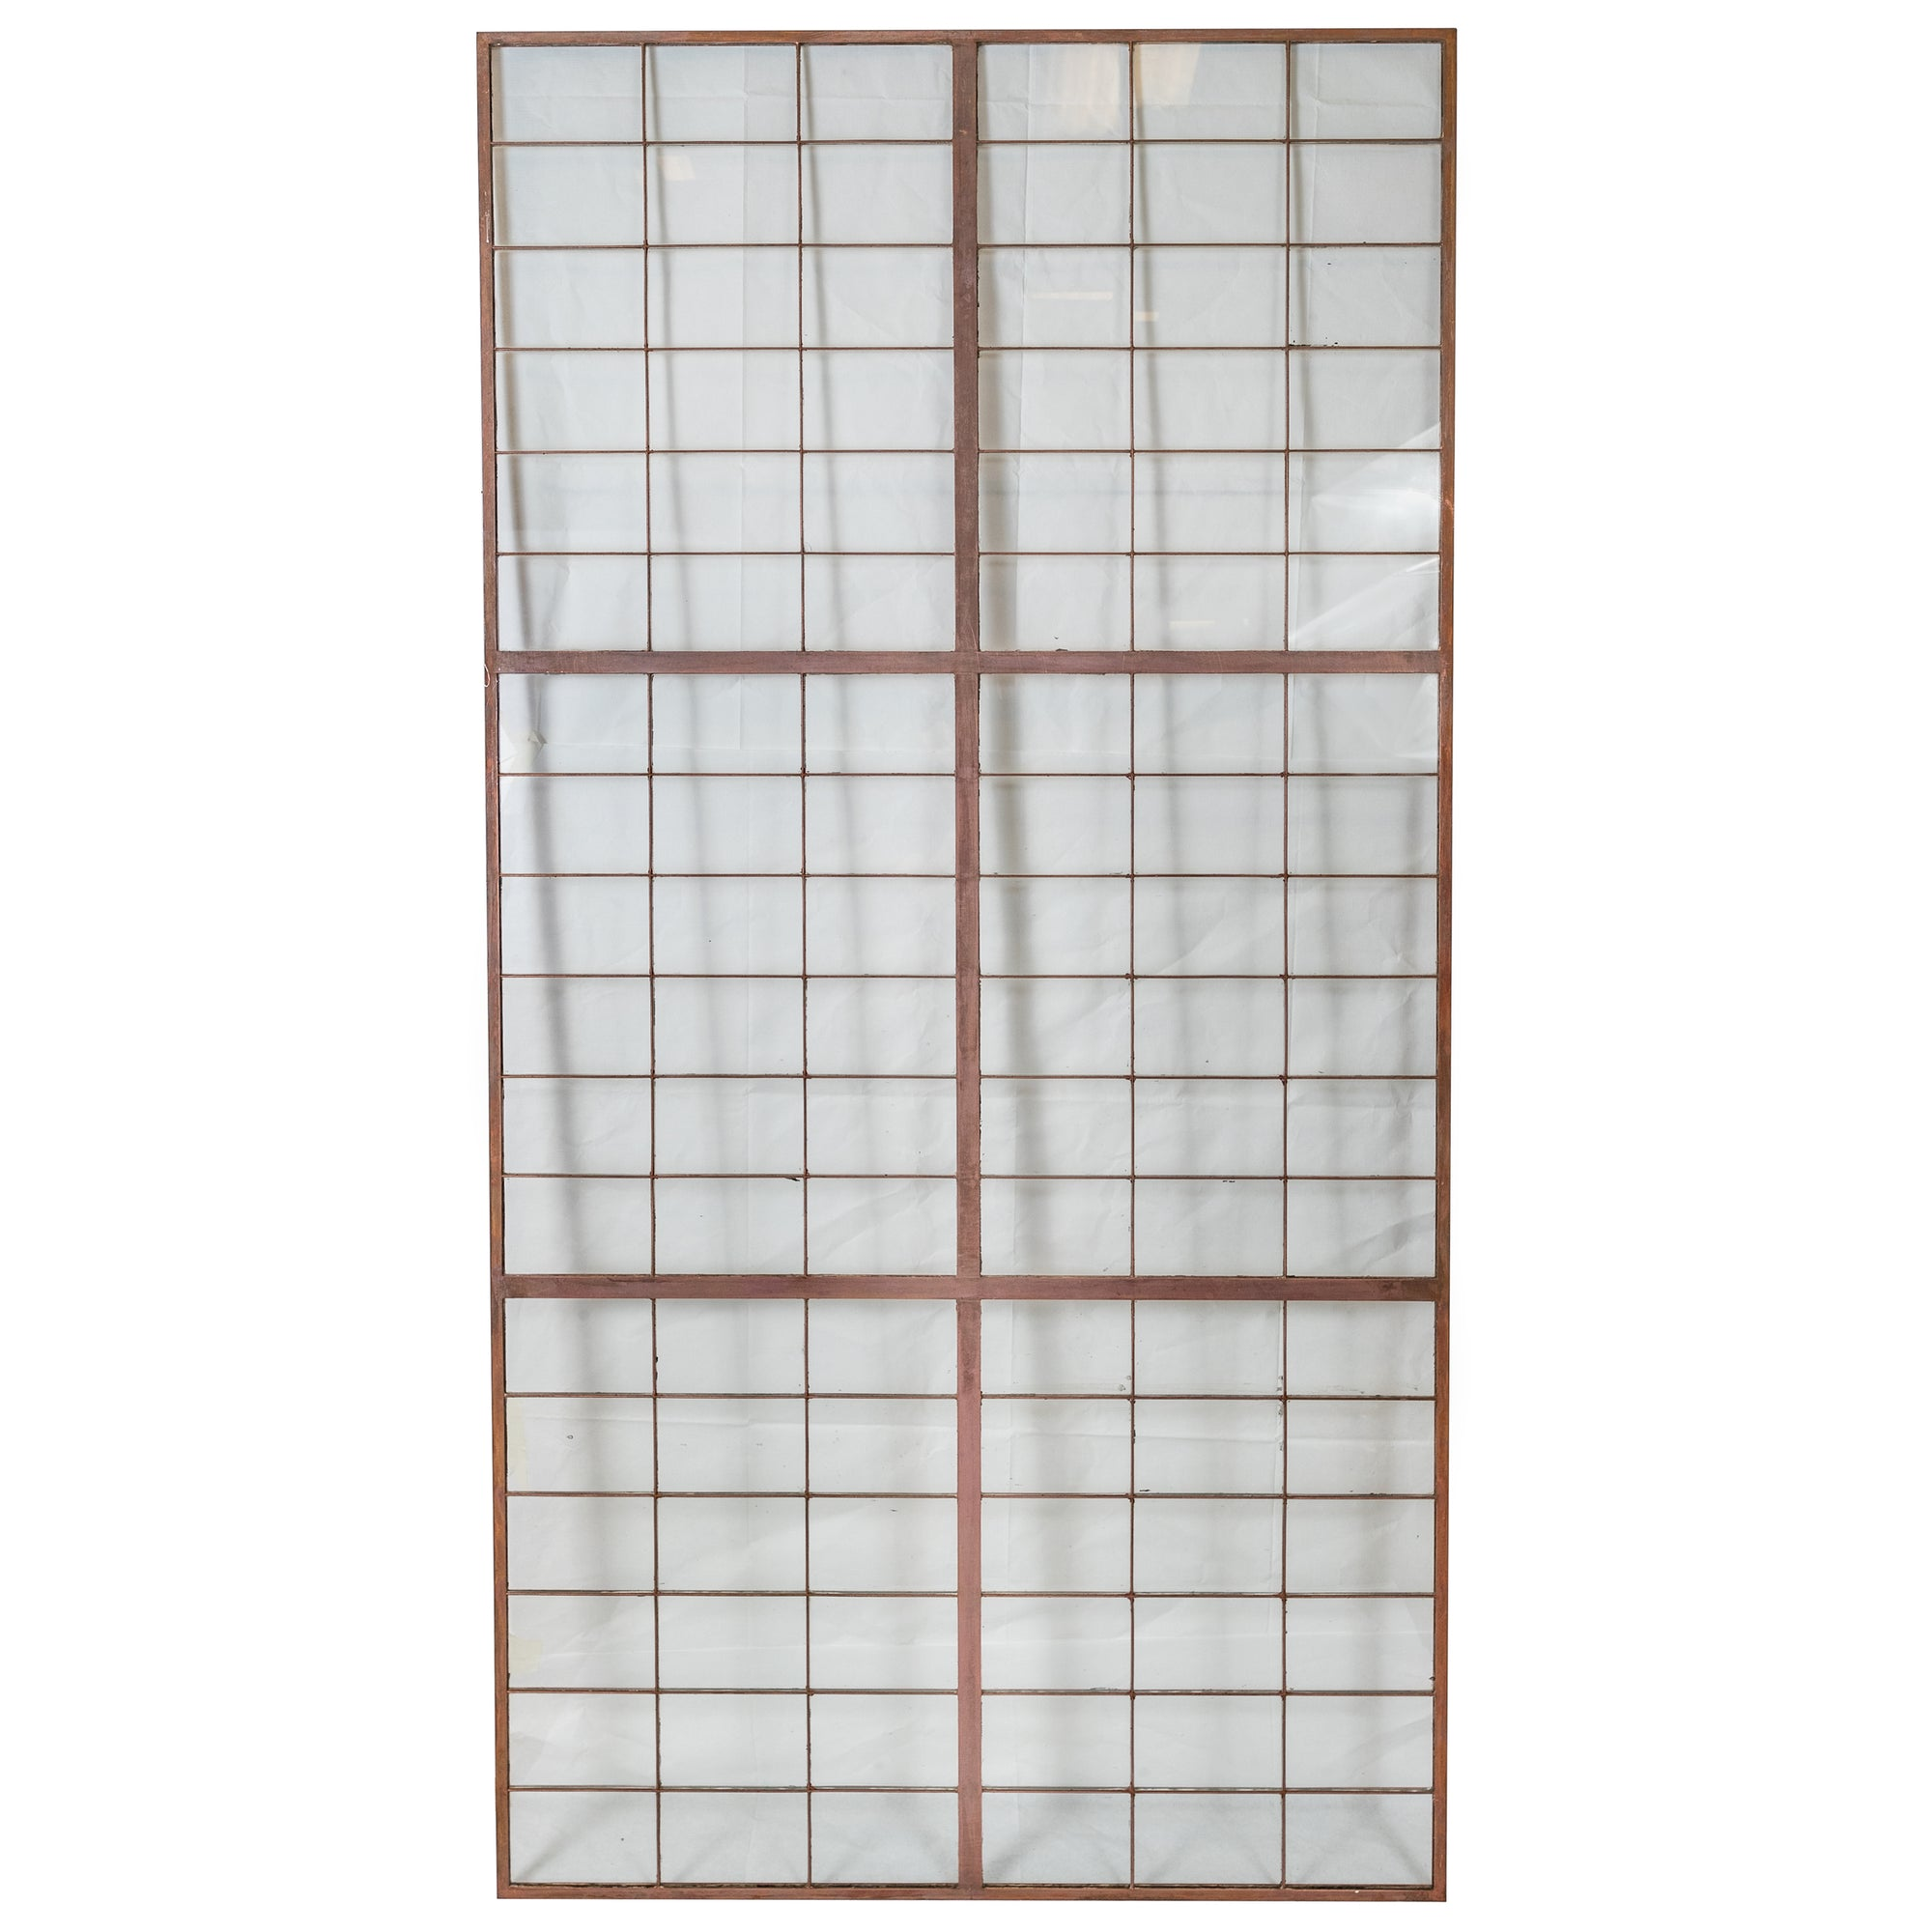 Reclaimed Glass Copper light Panels 78.5cm X 162cm - architectural-forum